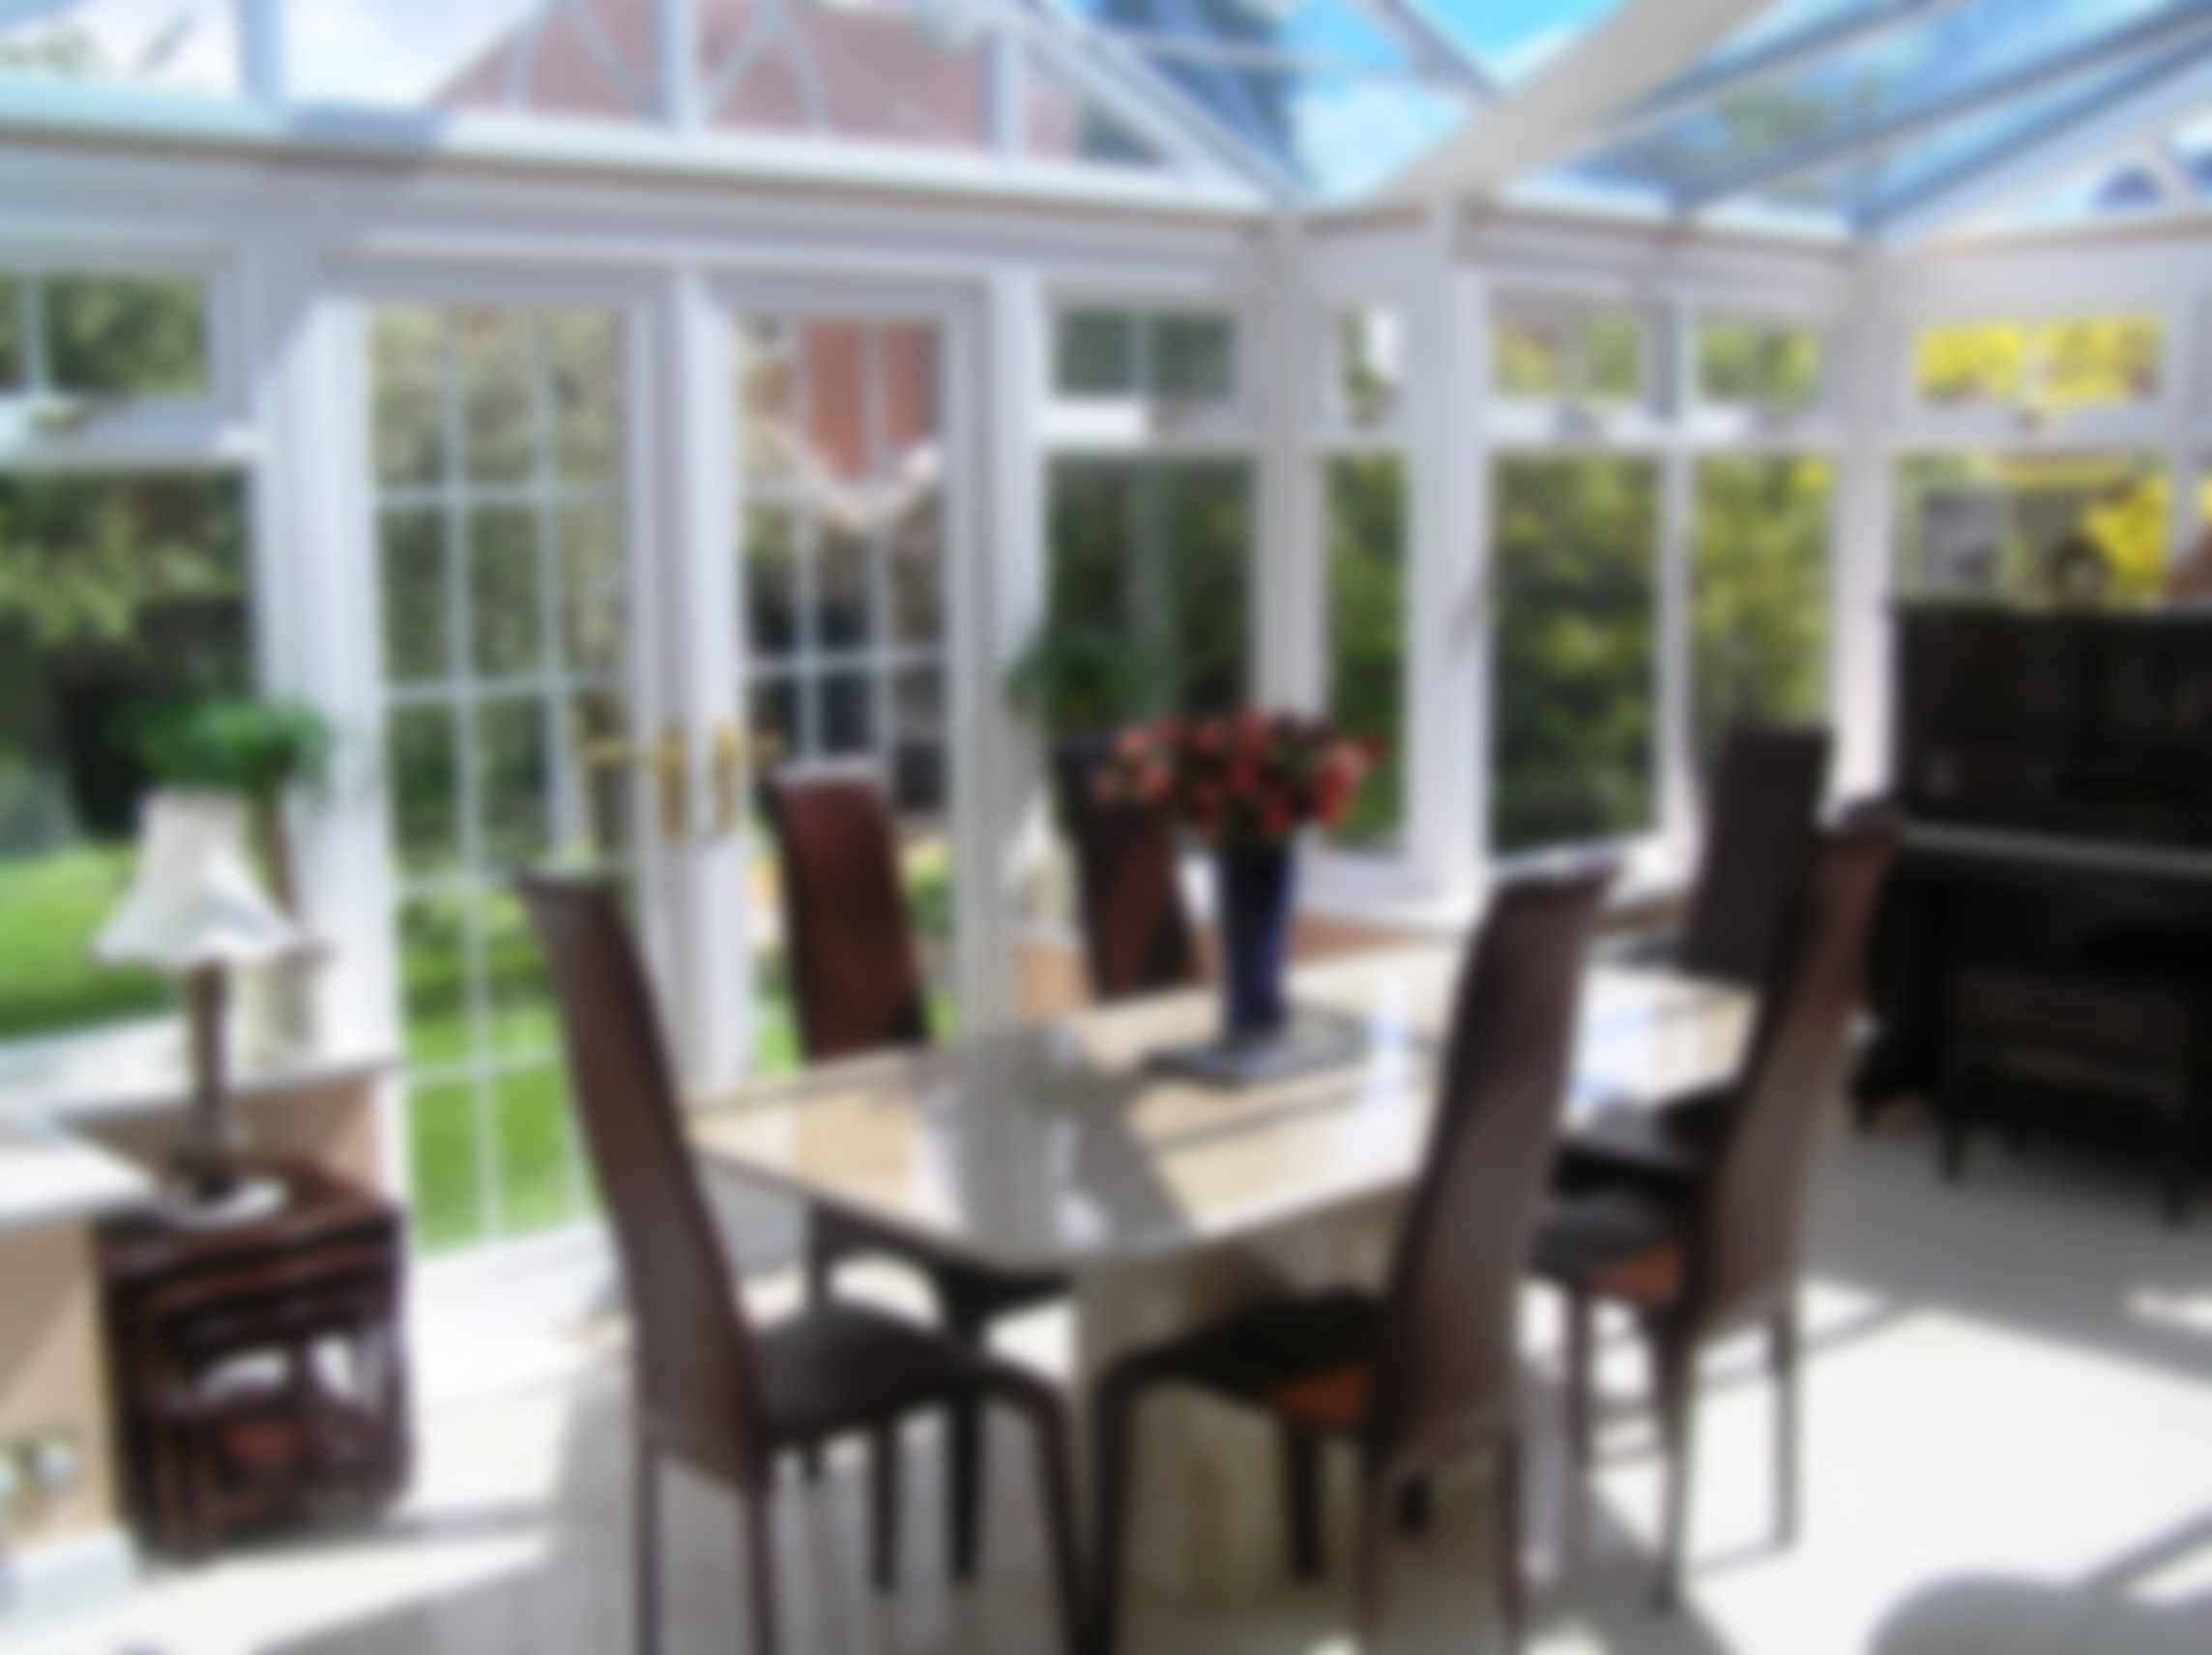 Conservatory-1-Blurred